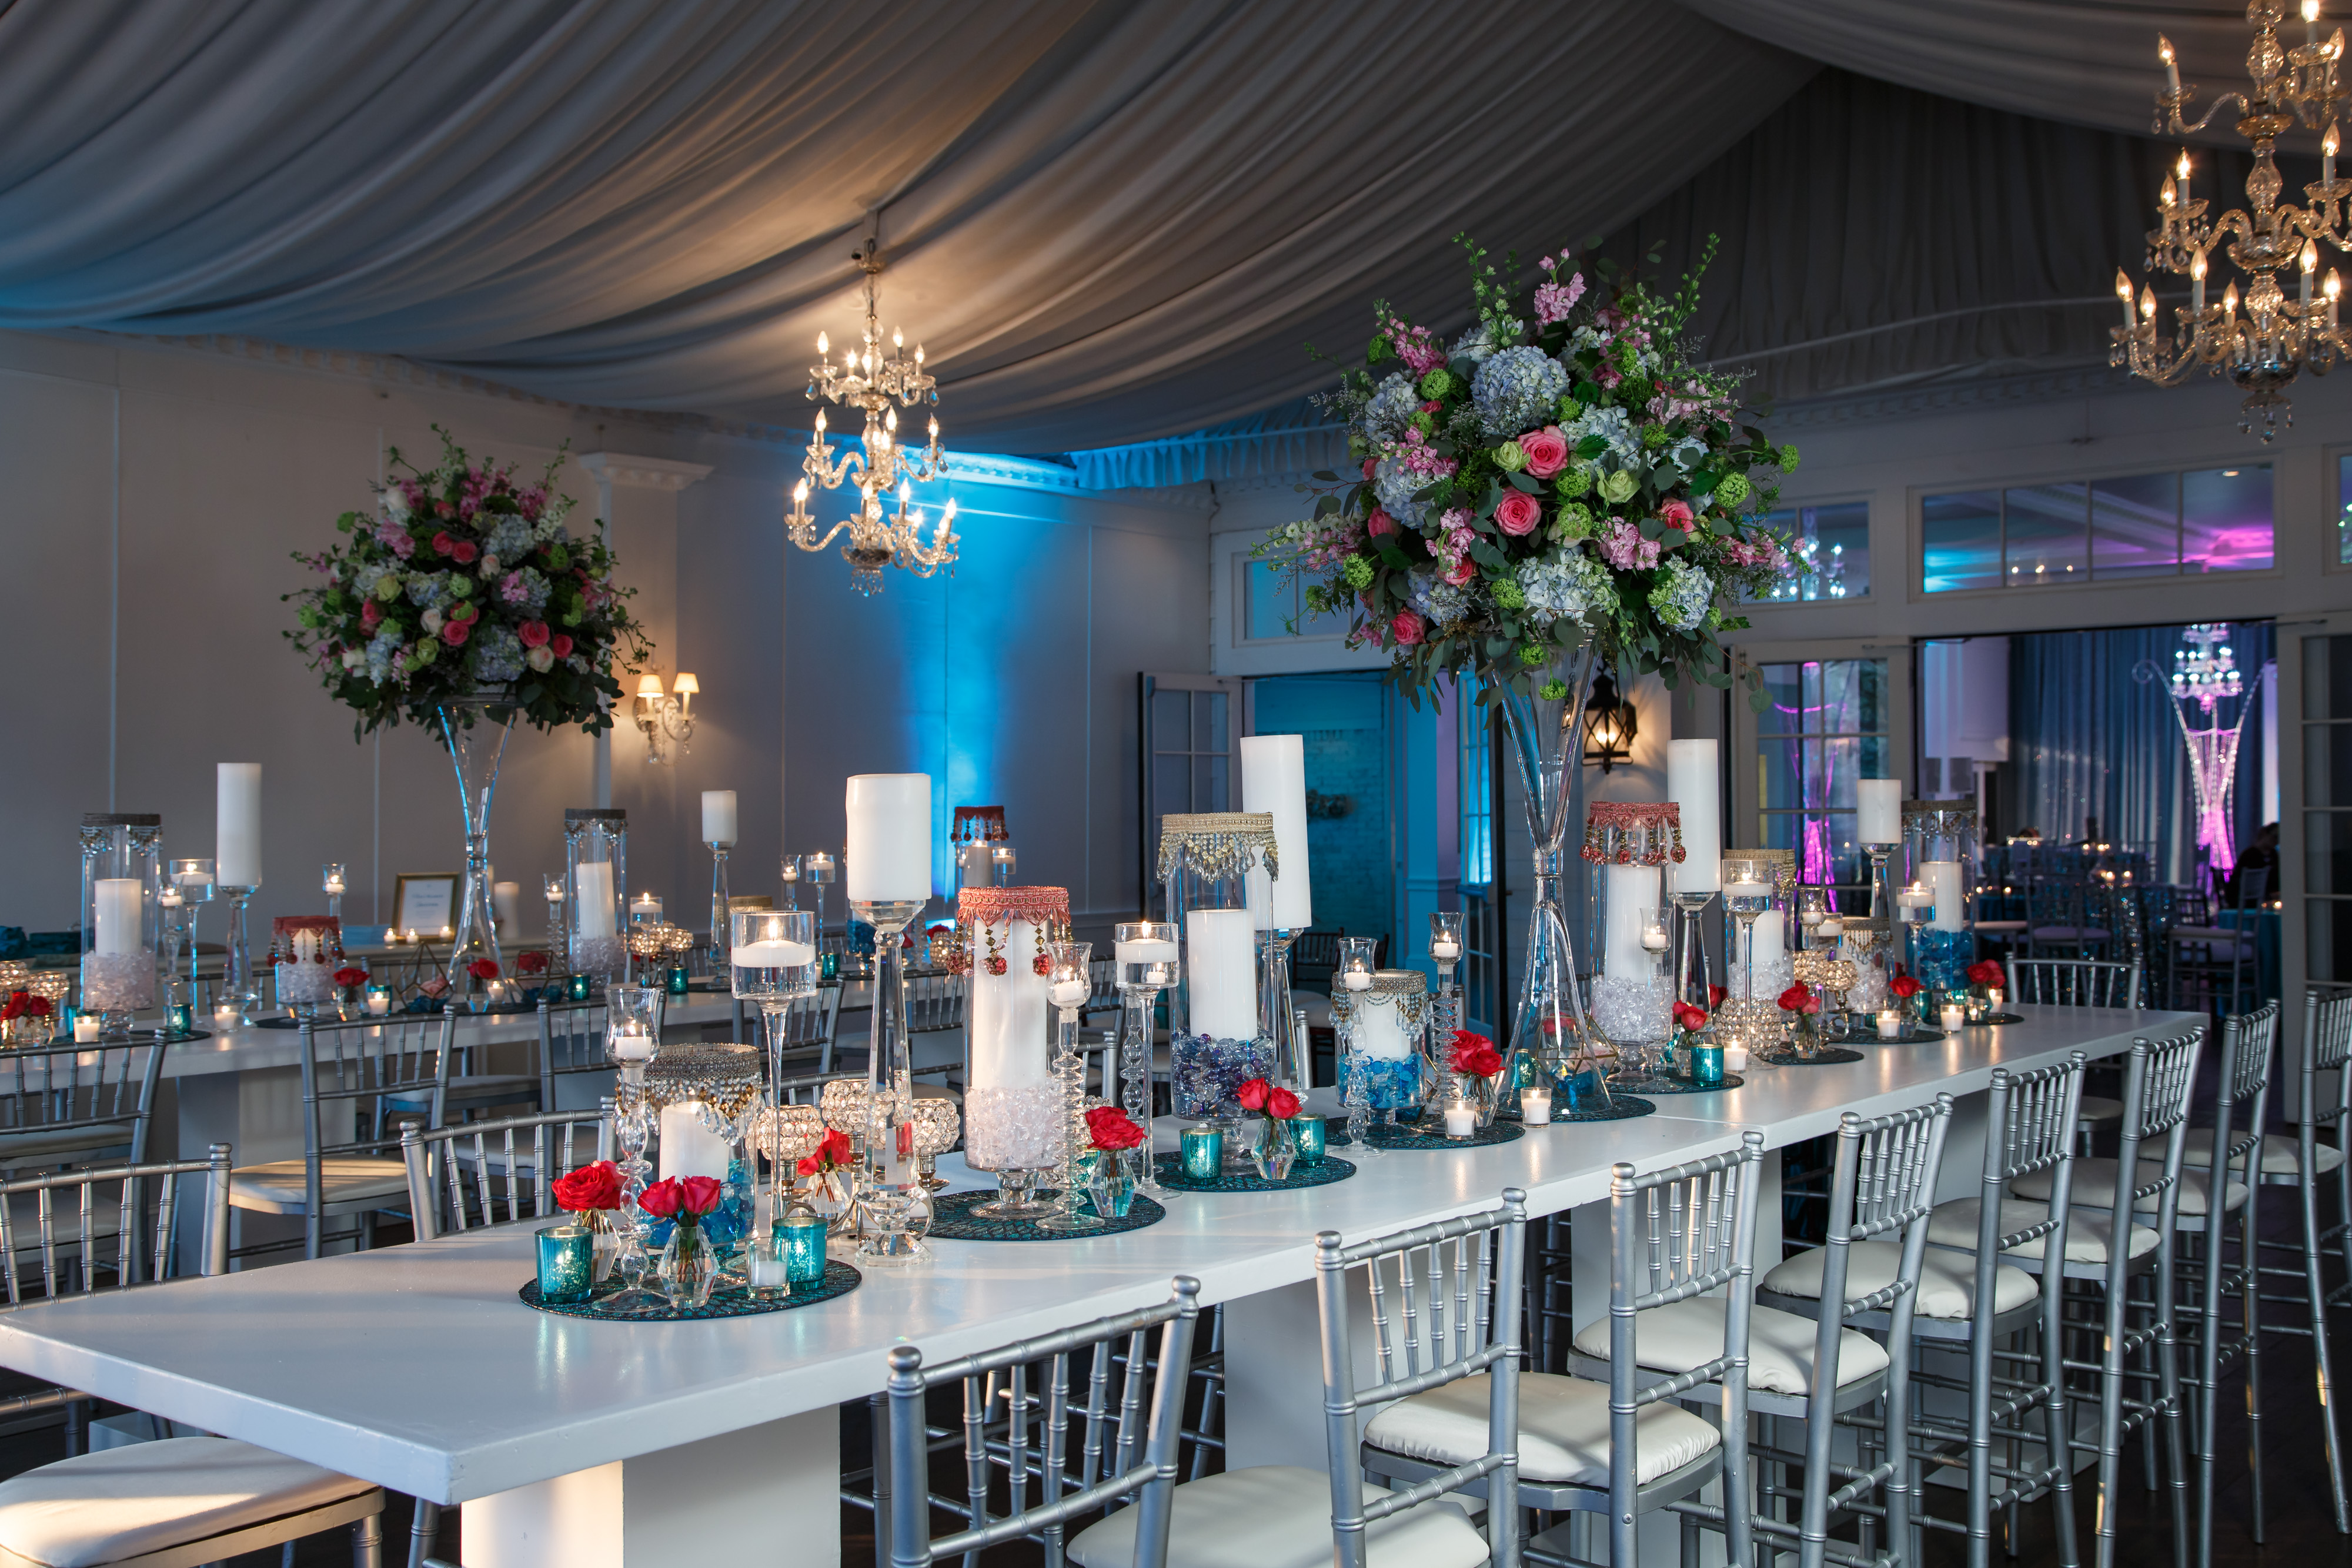 Tablescape with tall centerpiece